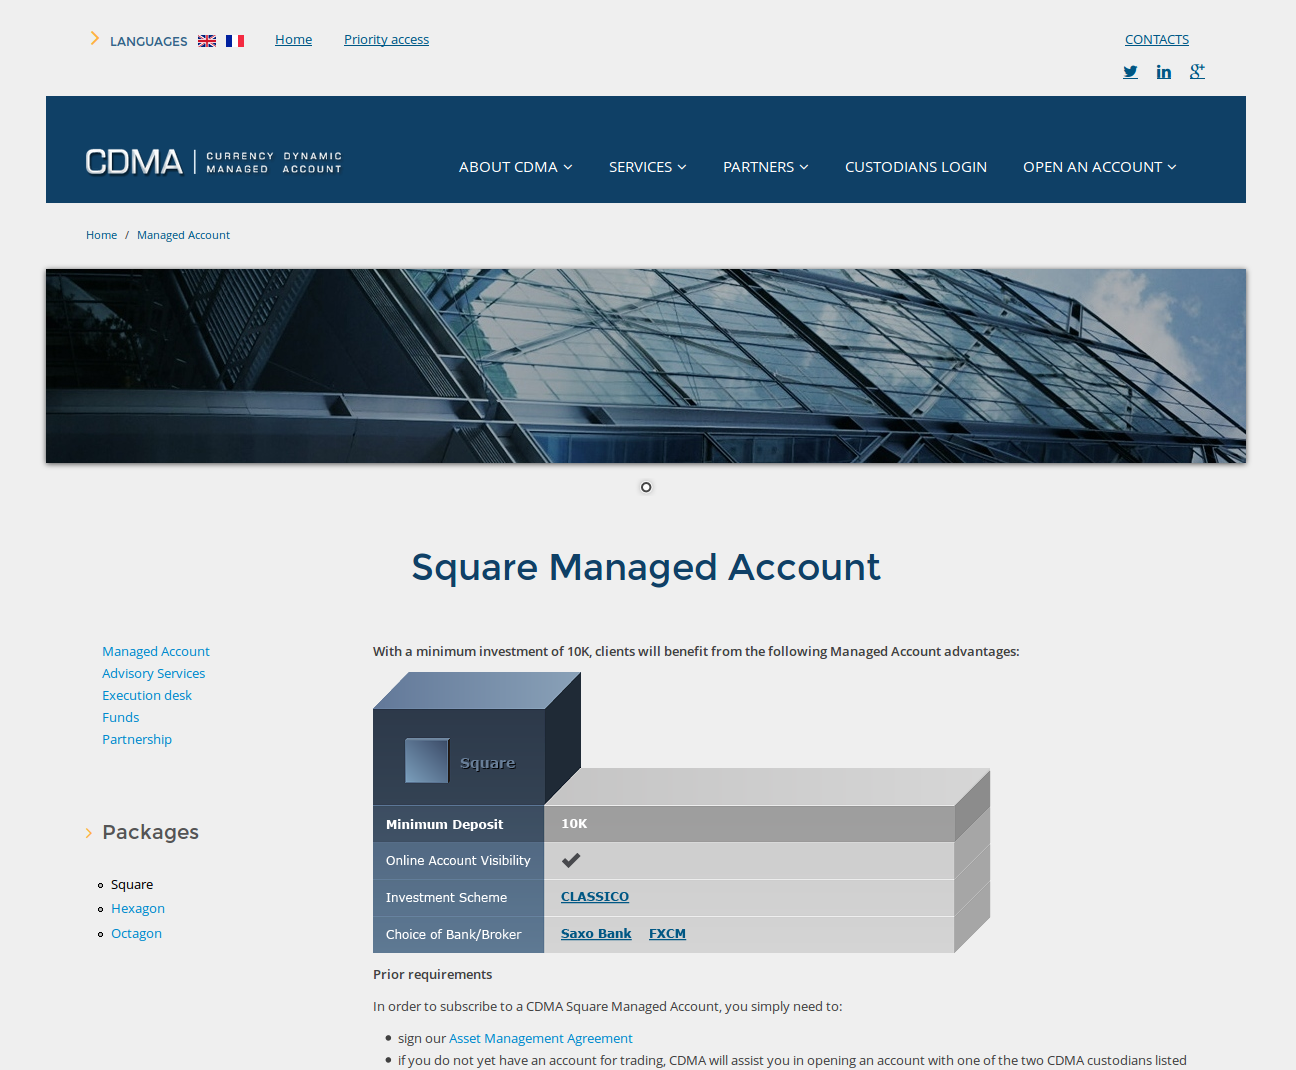 CDMA Square Account